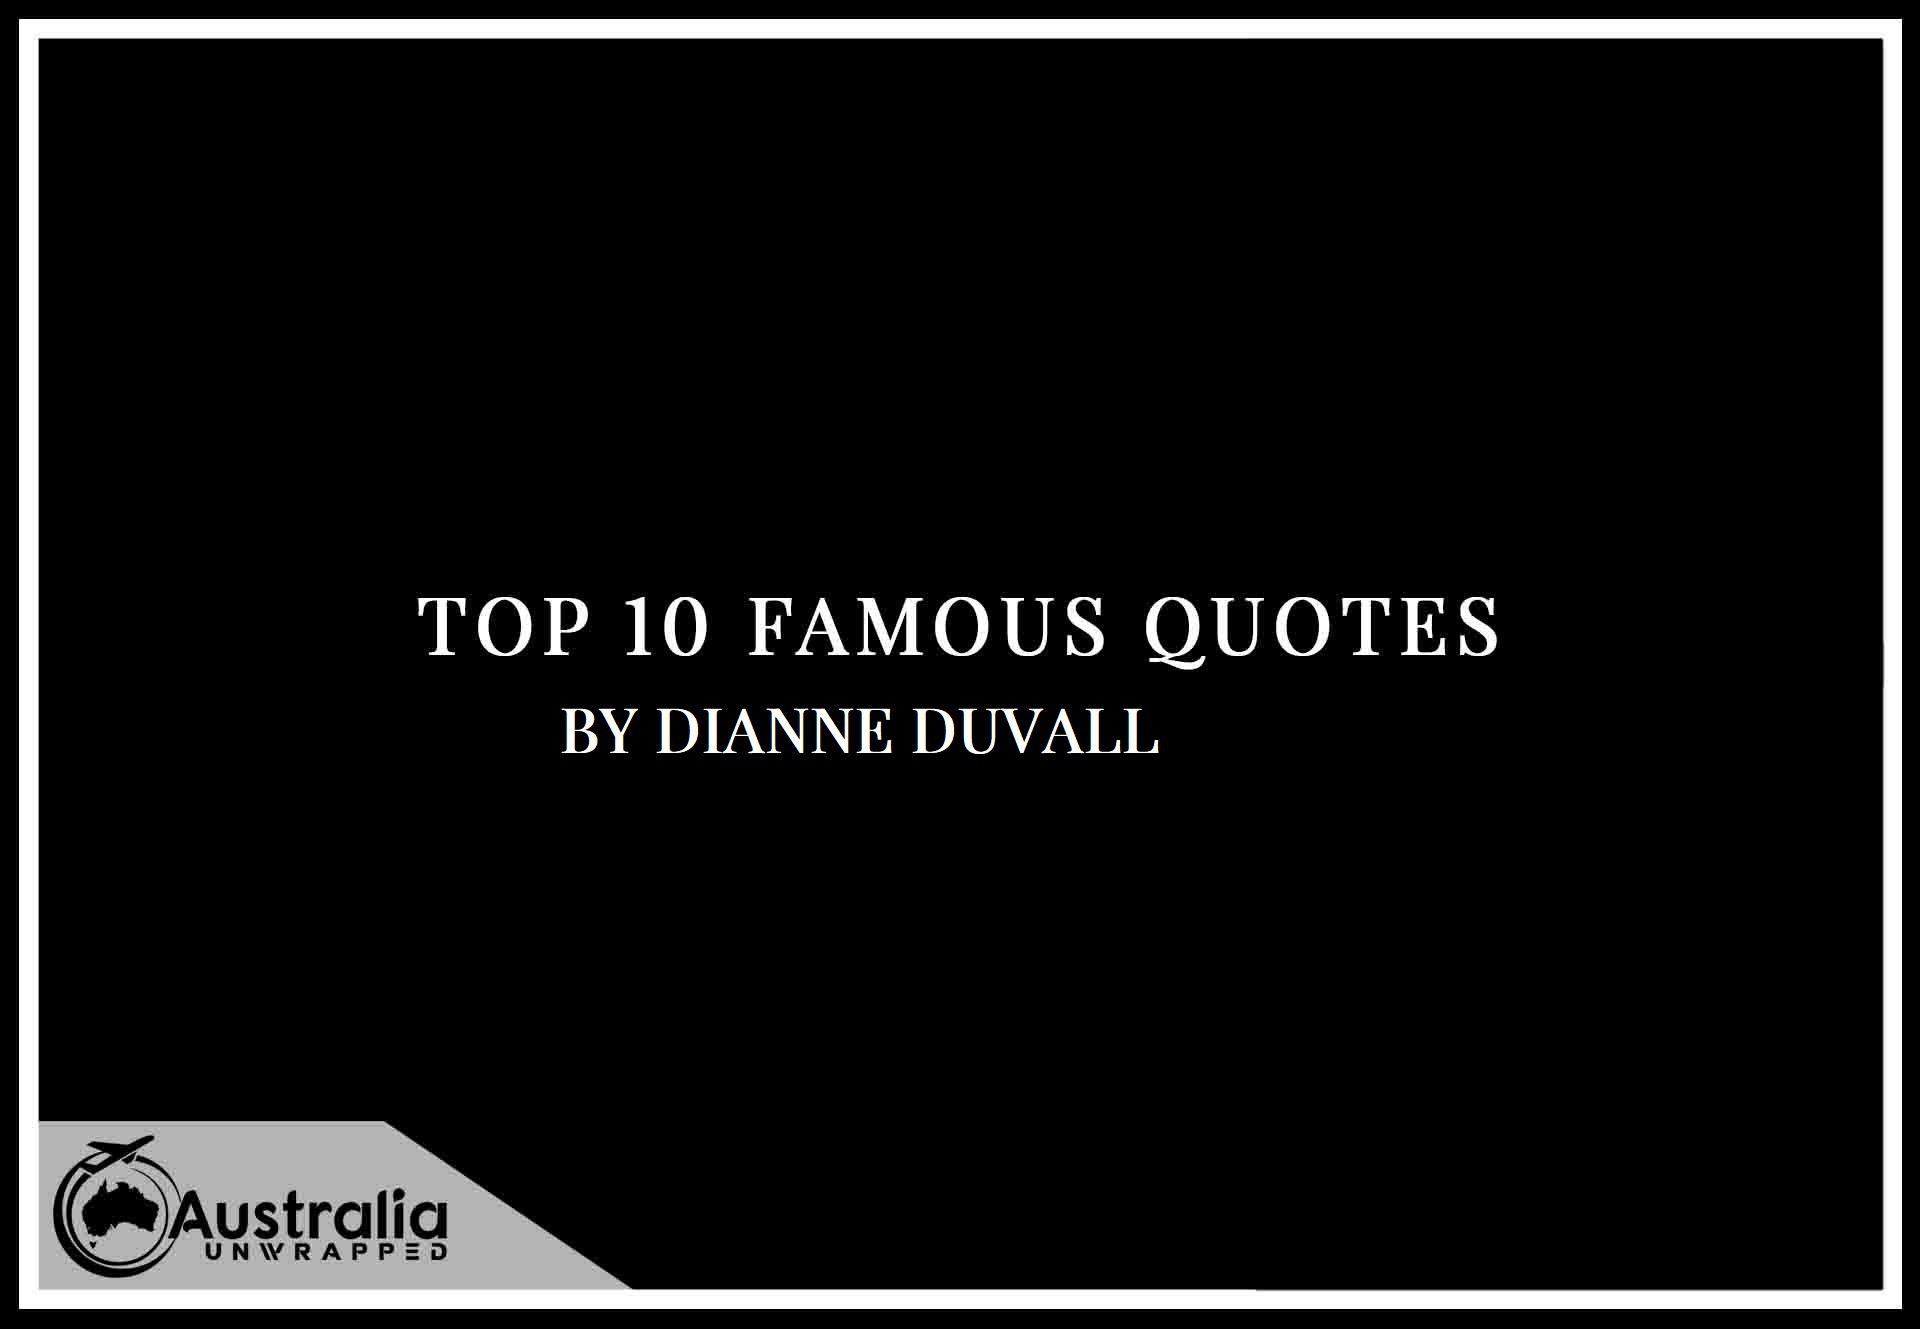 Top 10 Famous Quotes by Author Dianne Duvall